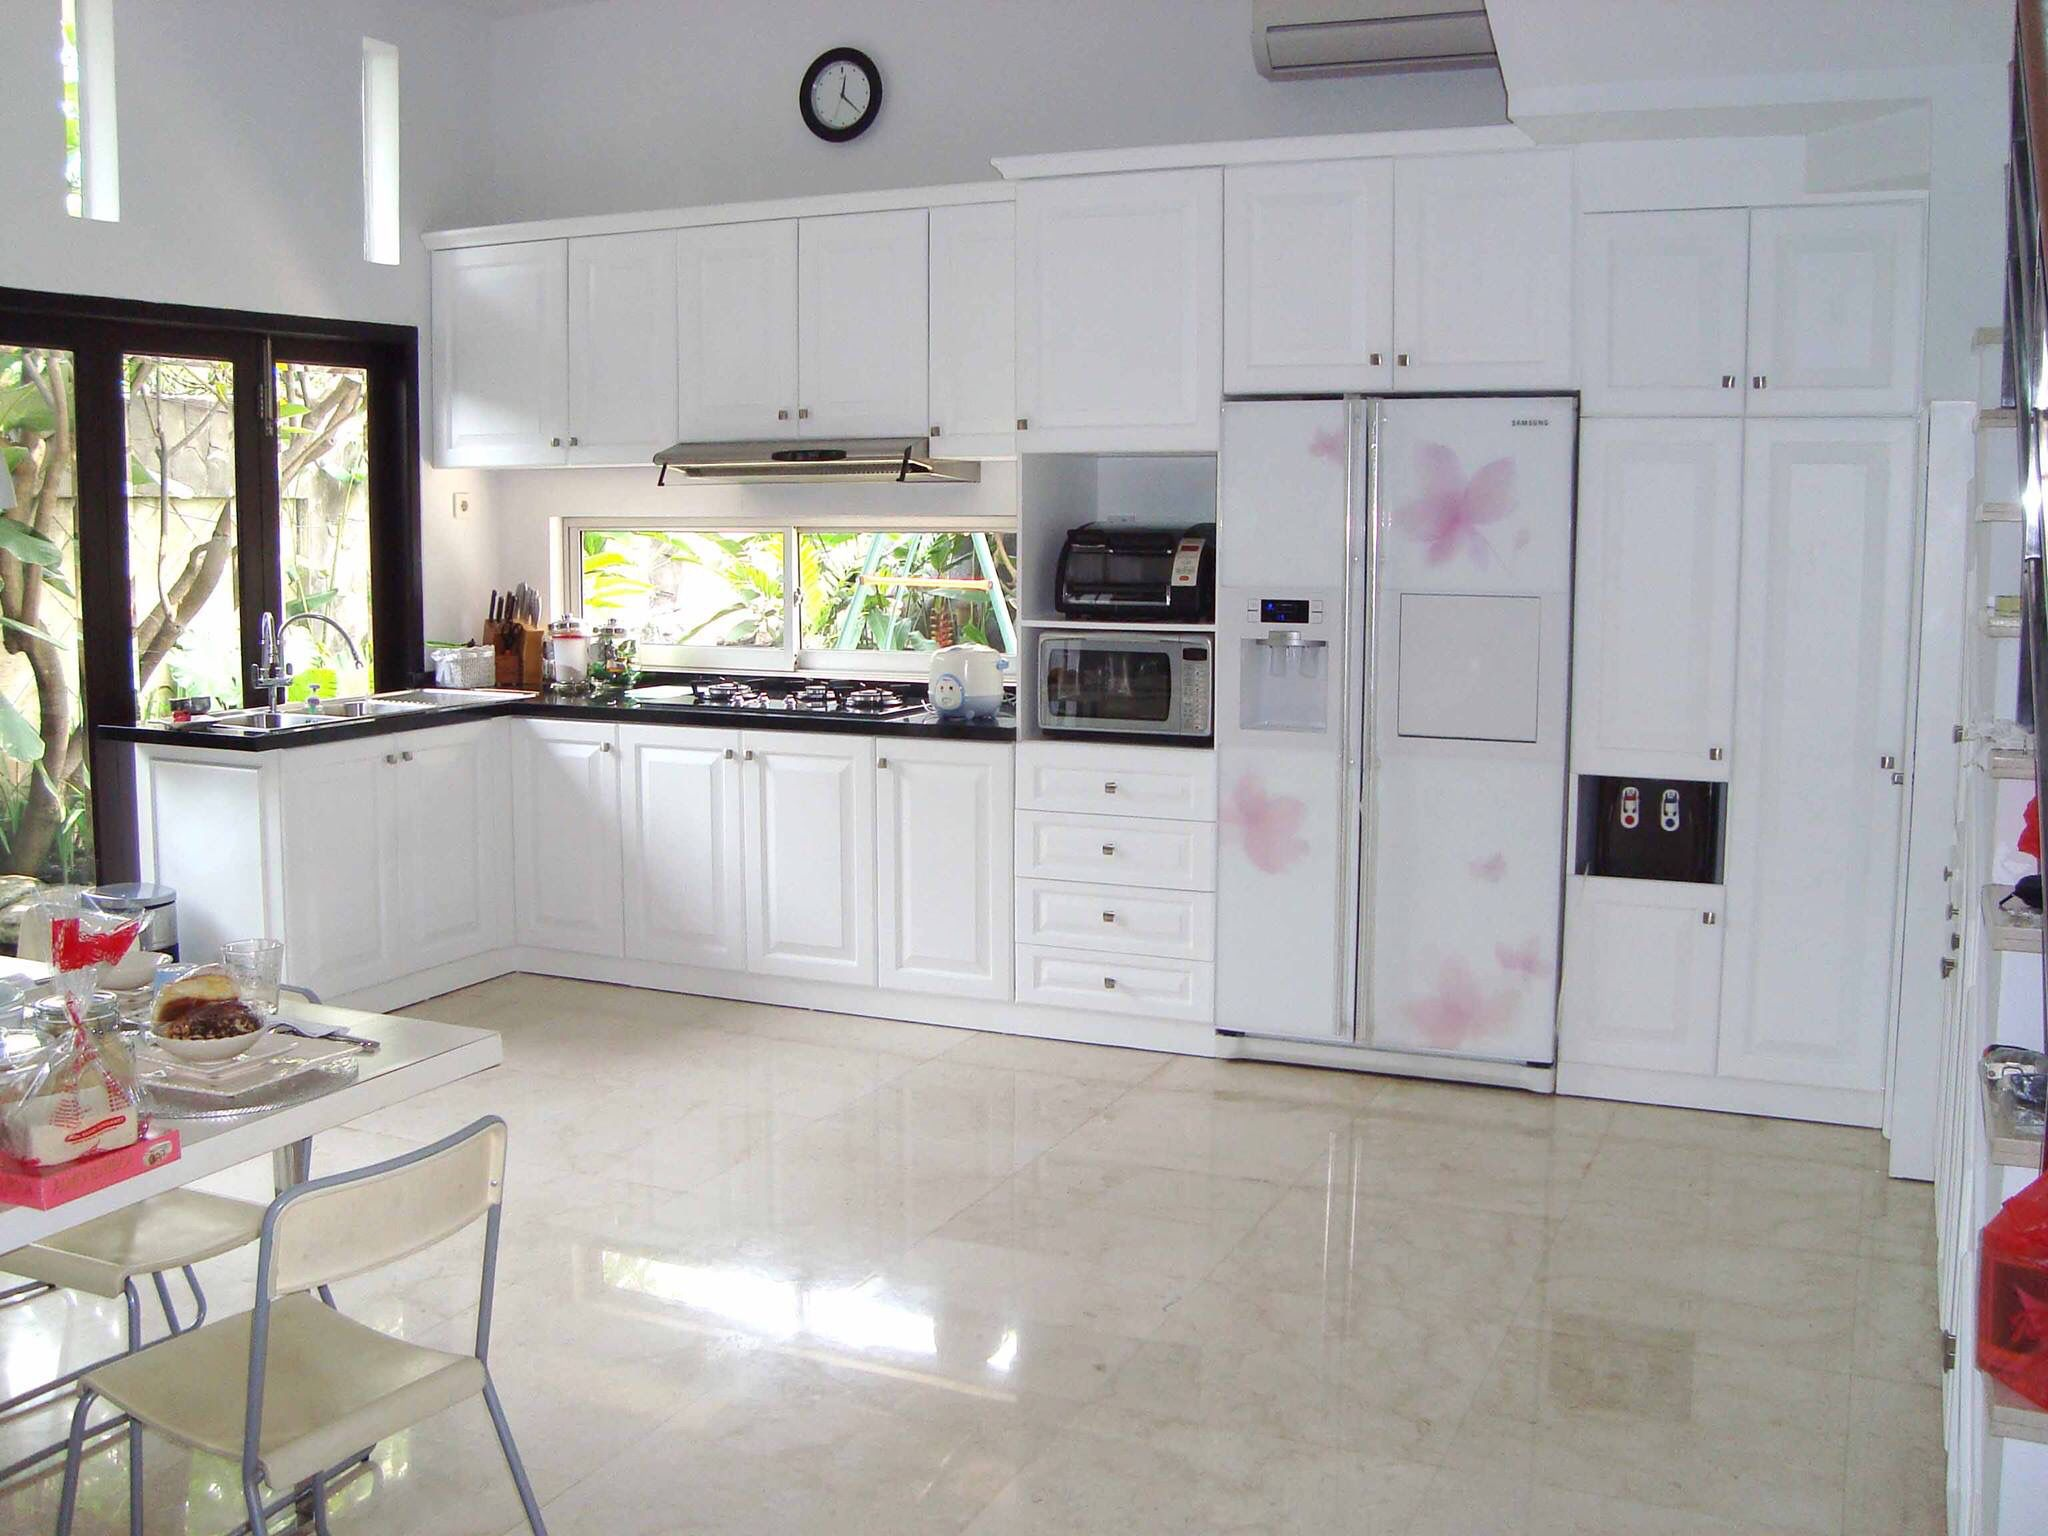 american style kitchen designs. American Style Kitchen design by Simple Luxury interior  Indonesia